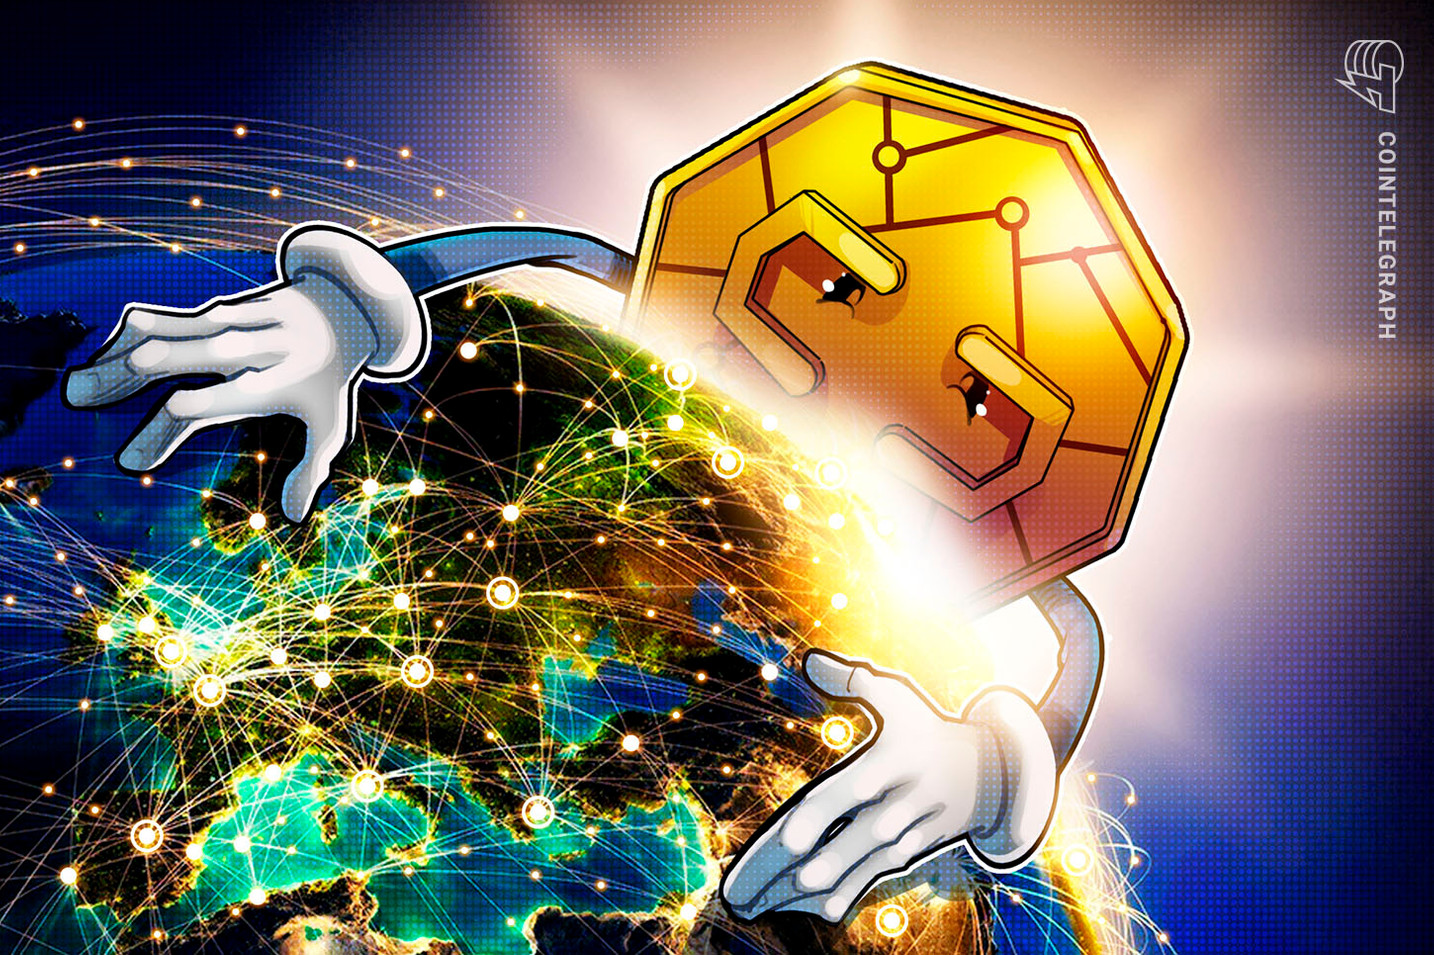 Global P2P Bitcoin Trading Volume at Highest Point Since Jan. 2018